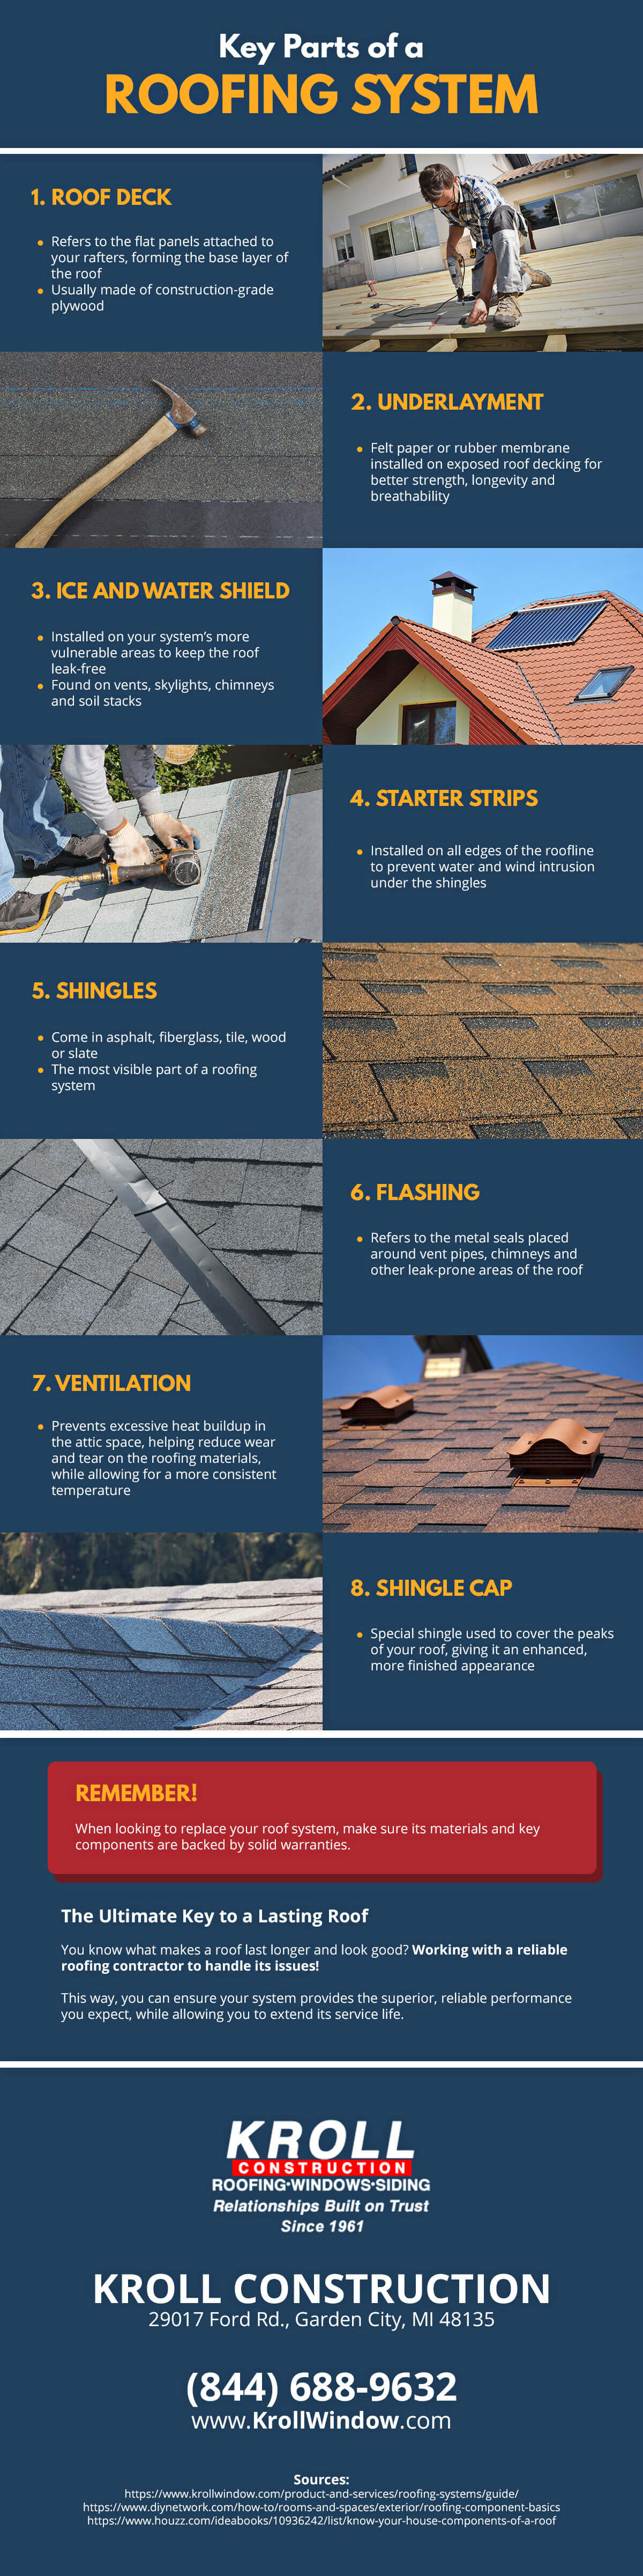 Key Parts of a Roofing System